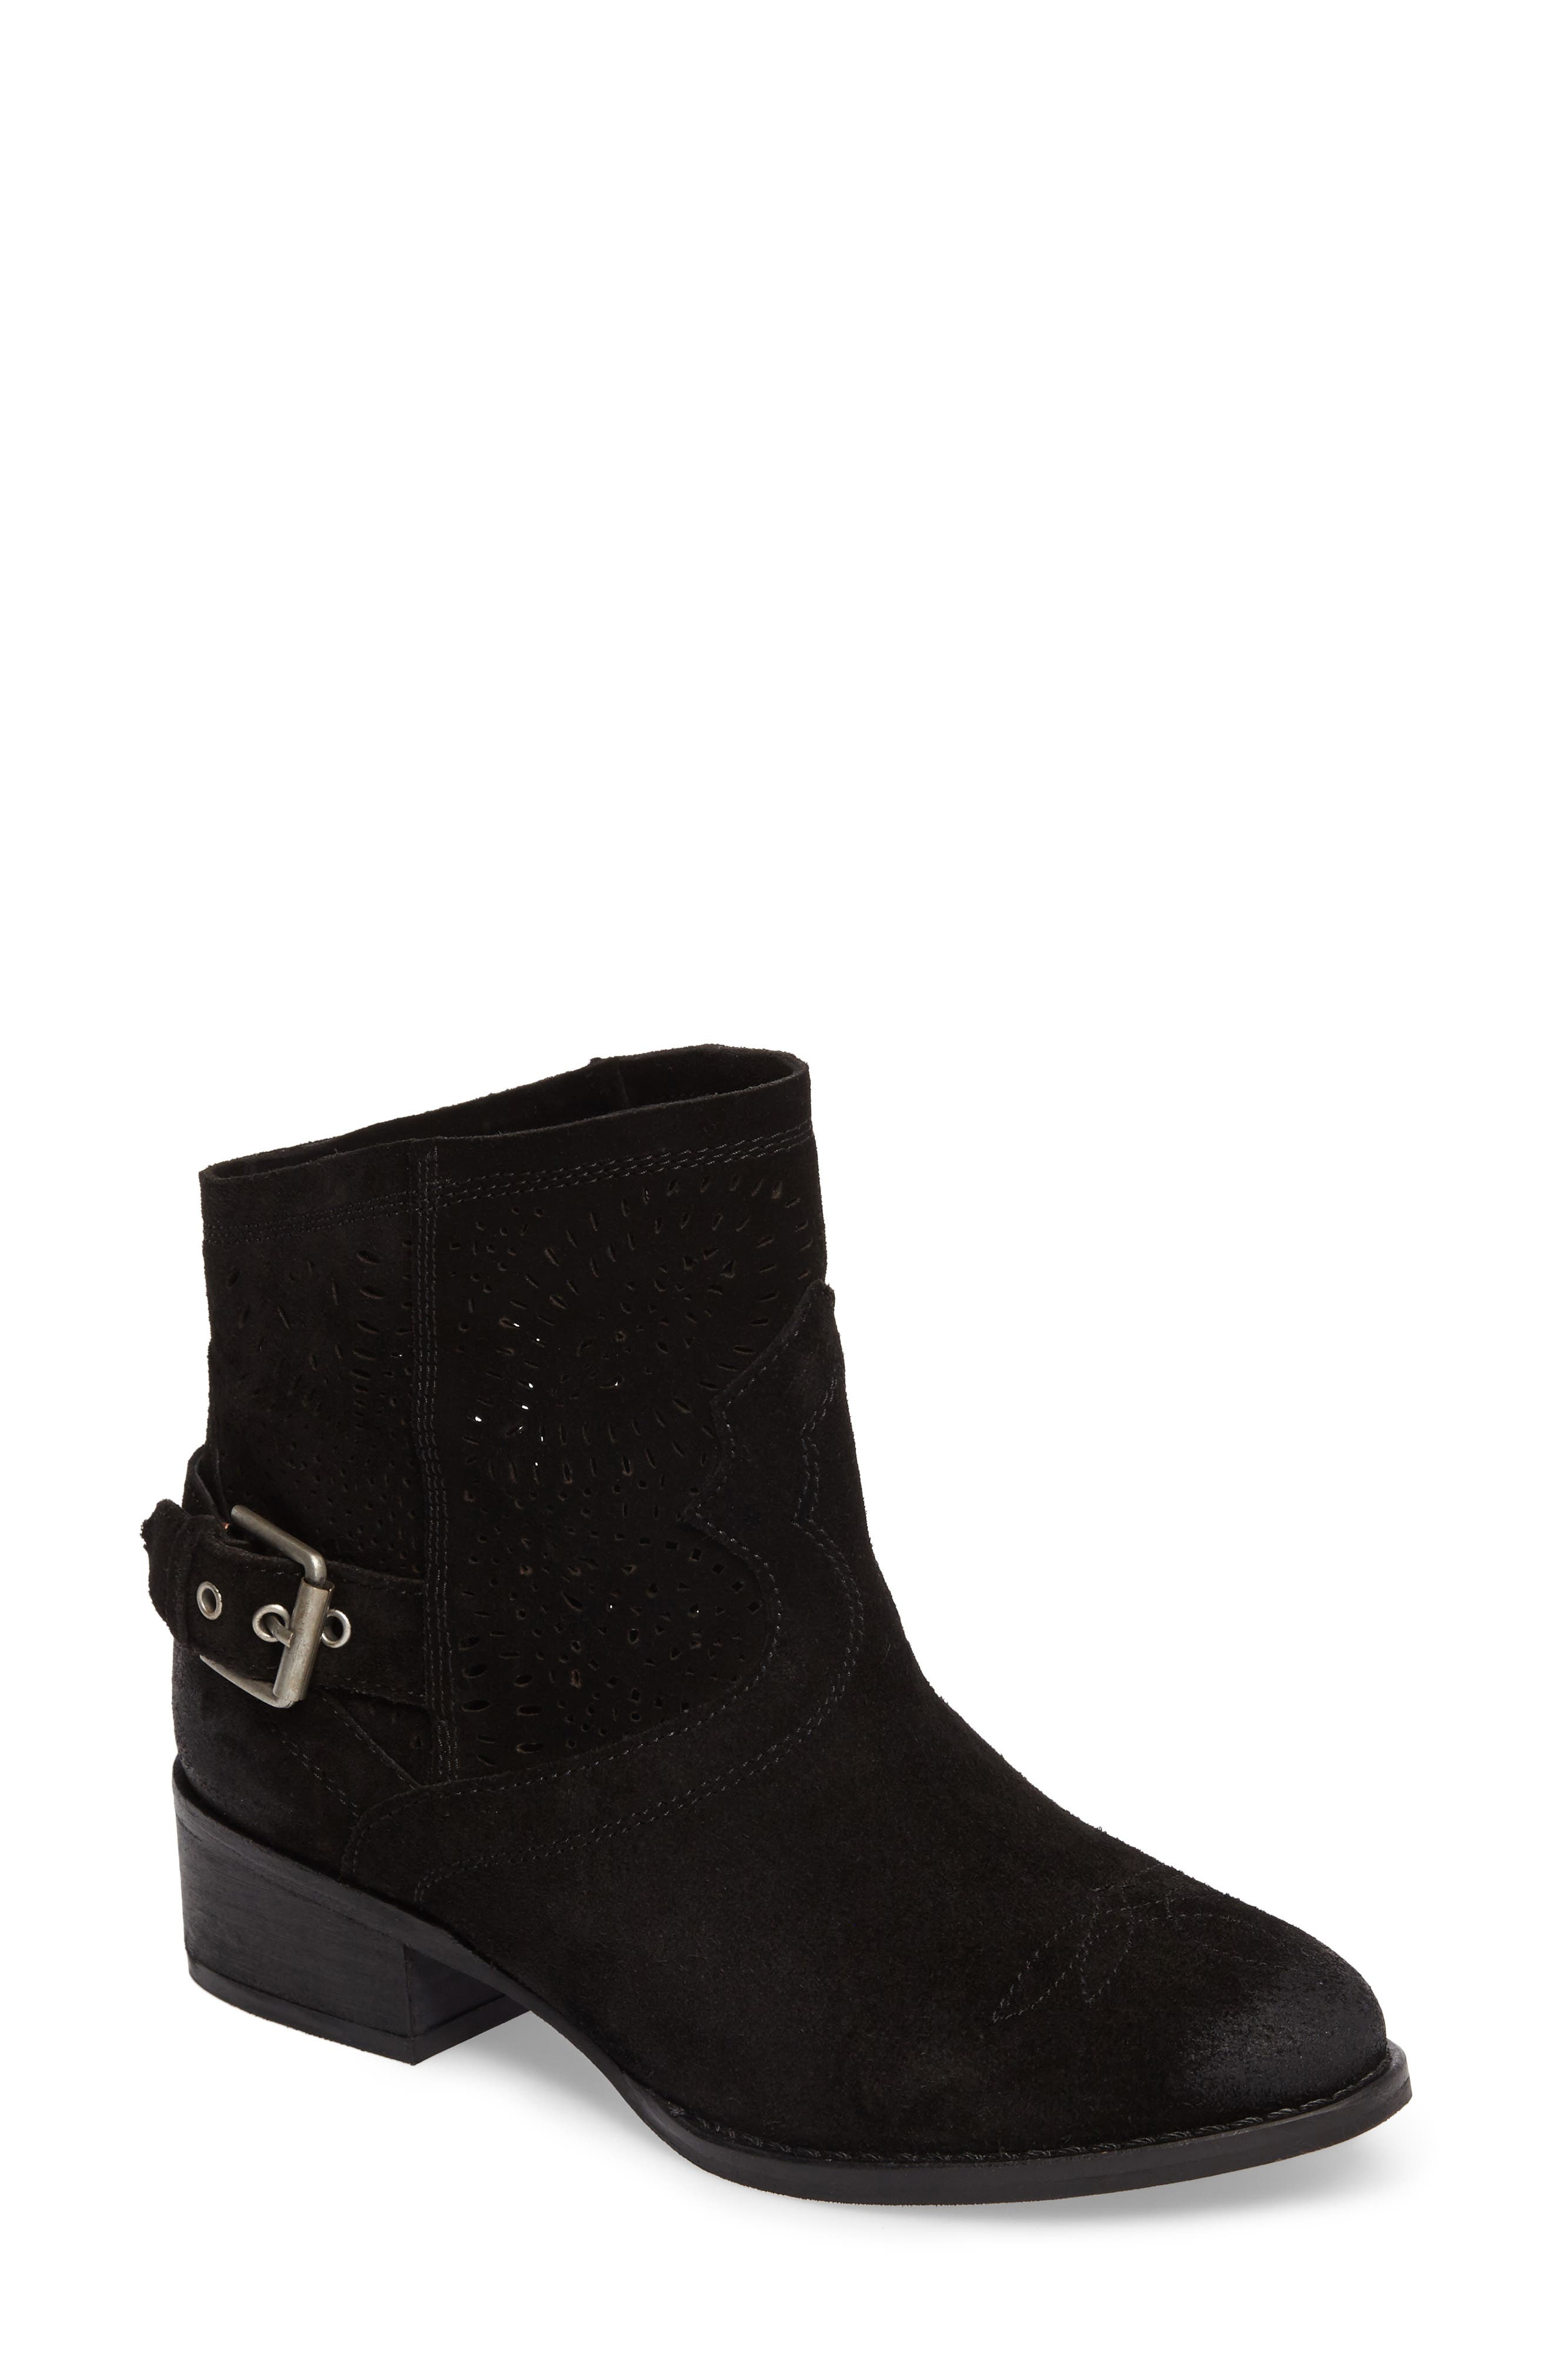 Zoey Perforated Bootie,                         Main,                         color, Black Suede